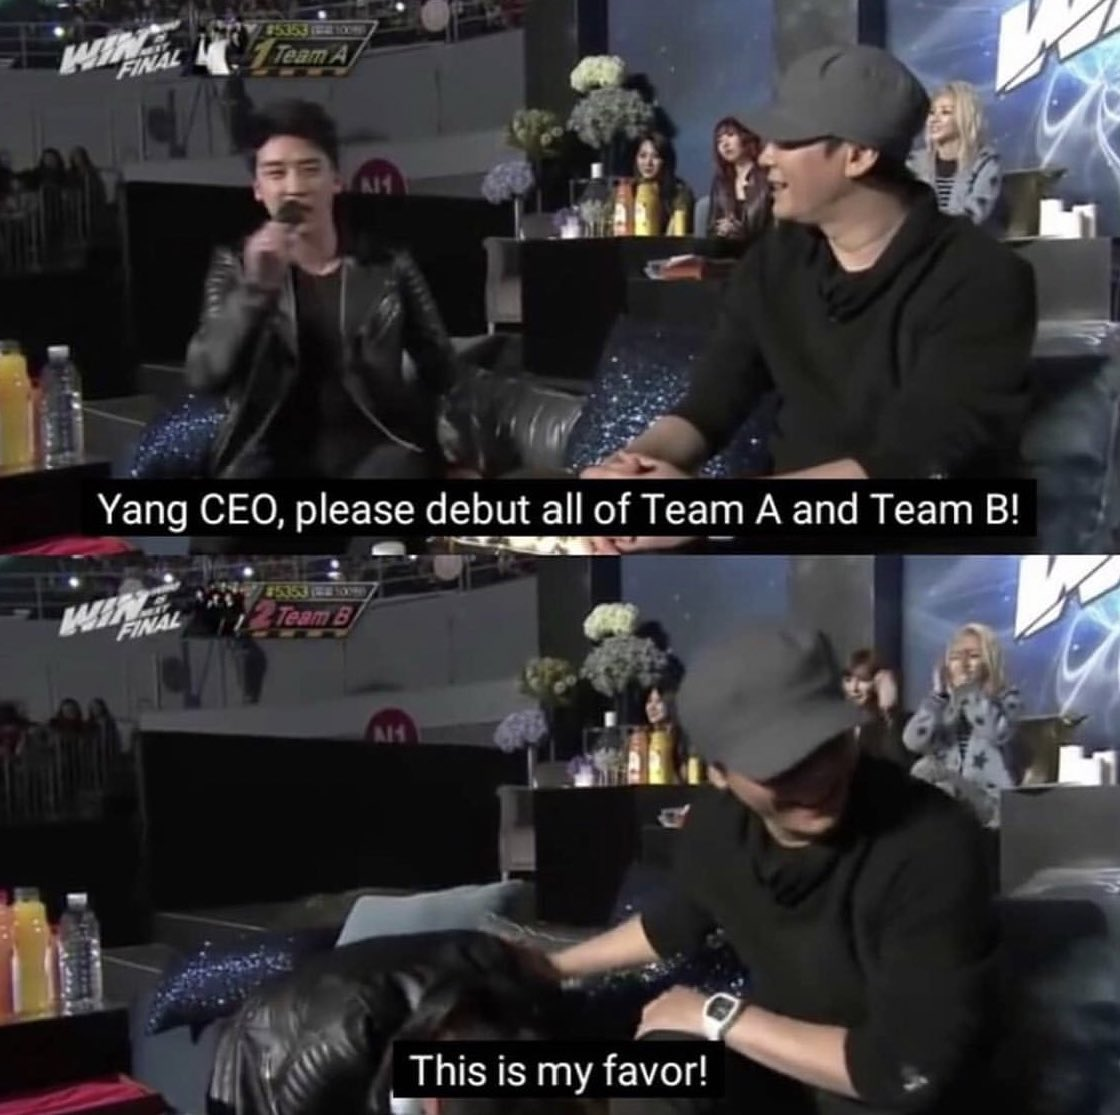 Seungri have been nothing but supportive to all YGE groups not just him but all of BigBang. It breaks my heart seeing yg fandoms spreading false info& dragging them in every chance they get!